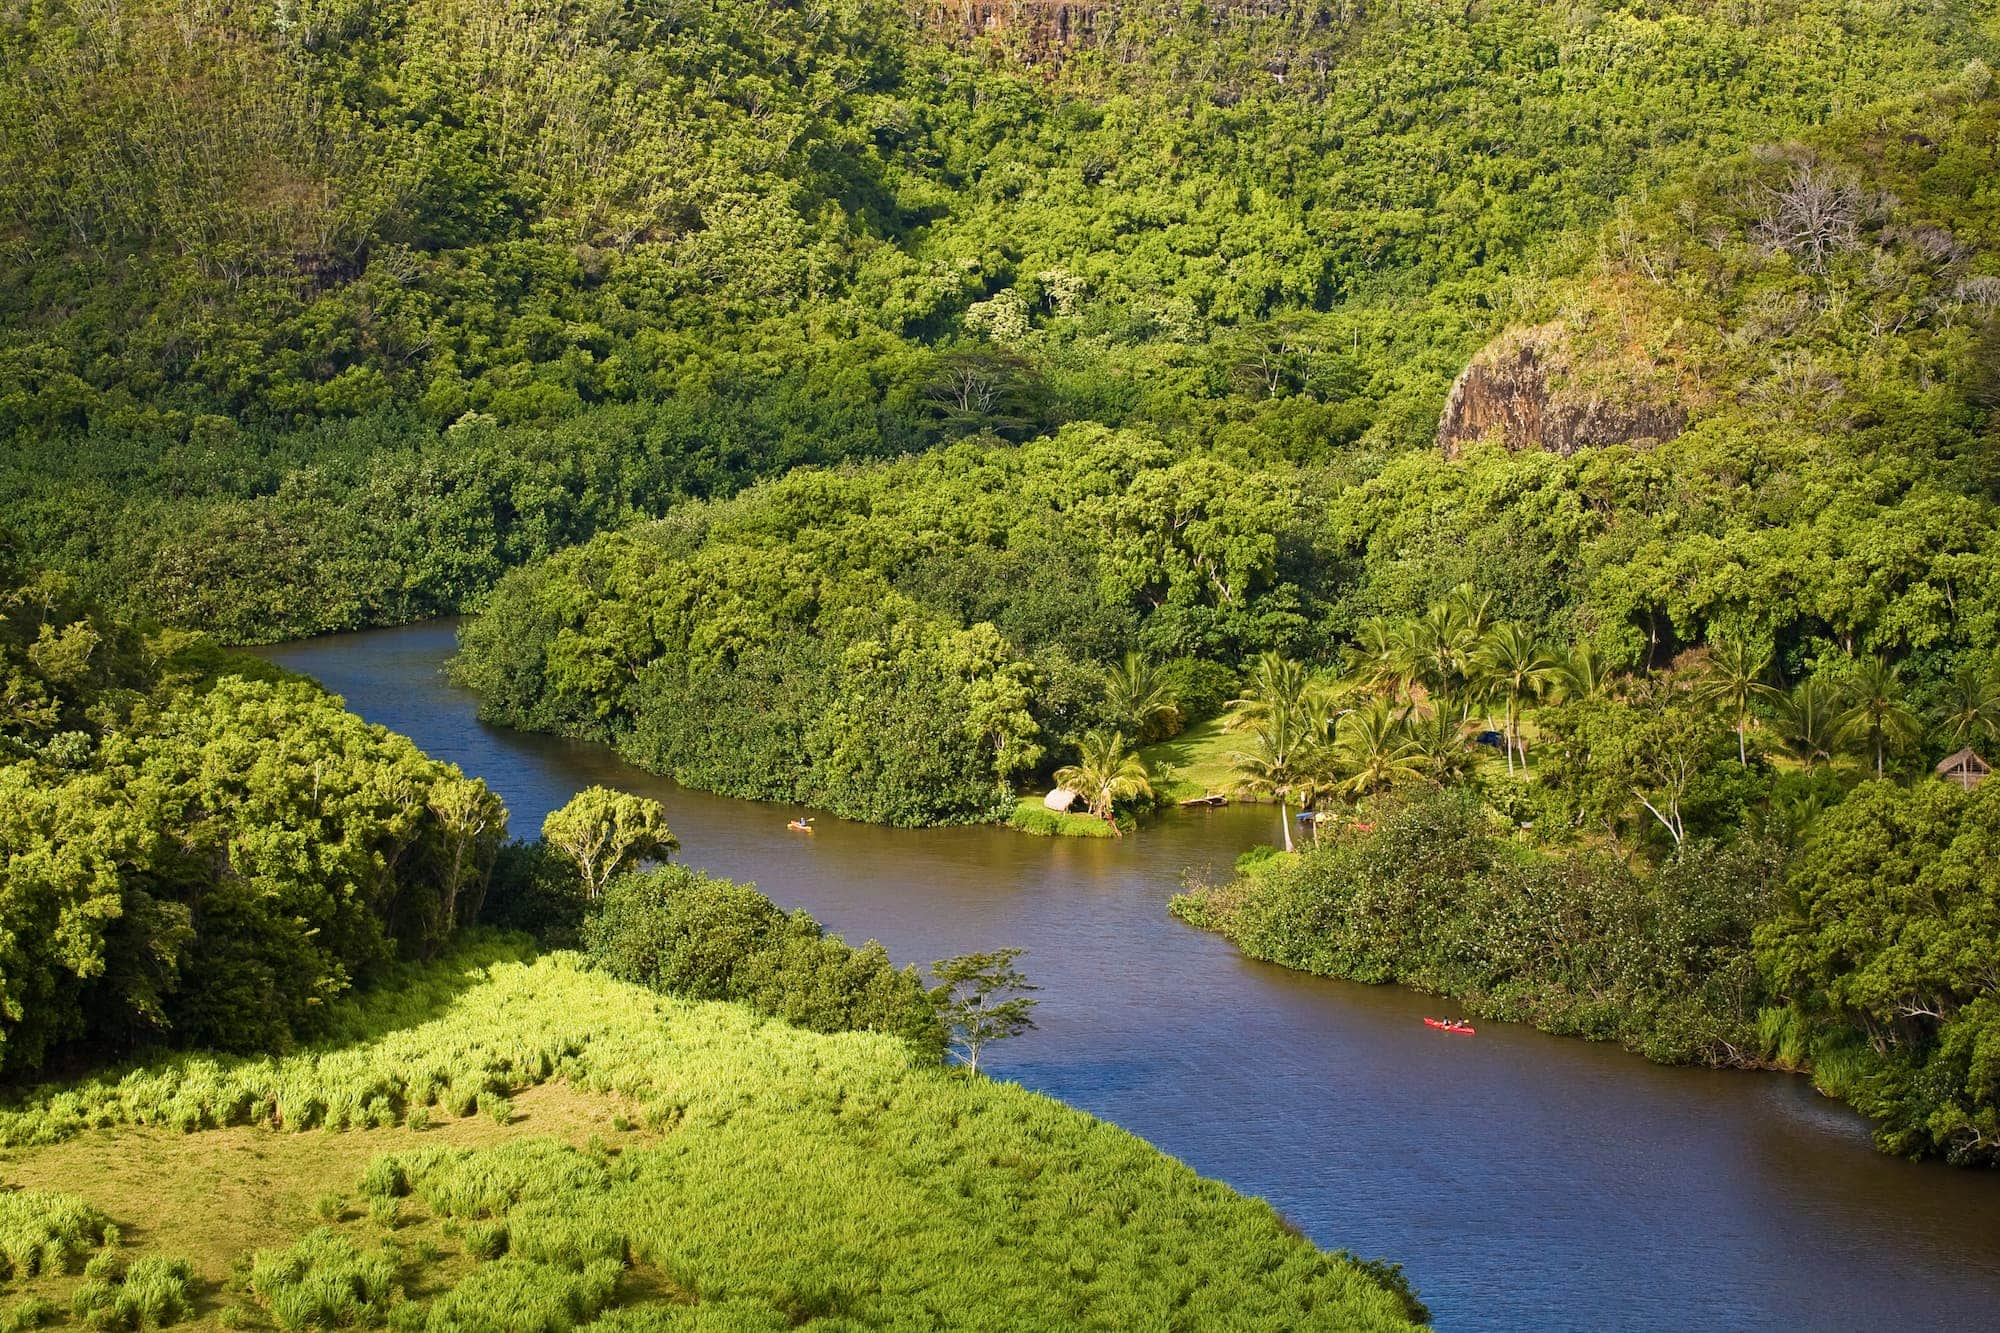 The 7 most popular water activities on Kauaʻi